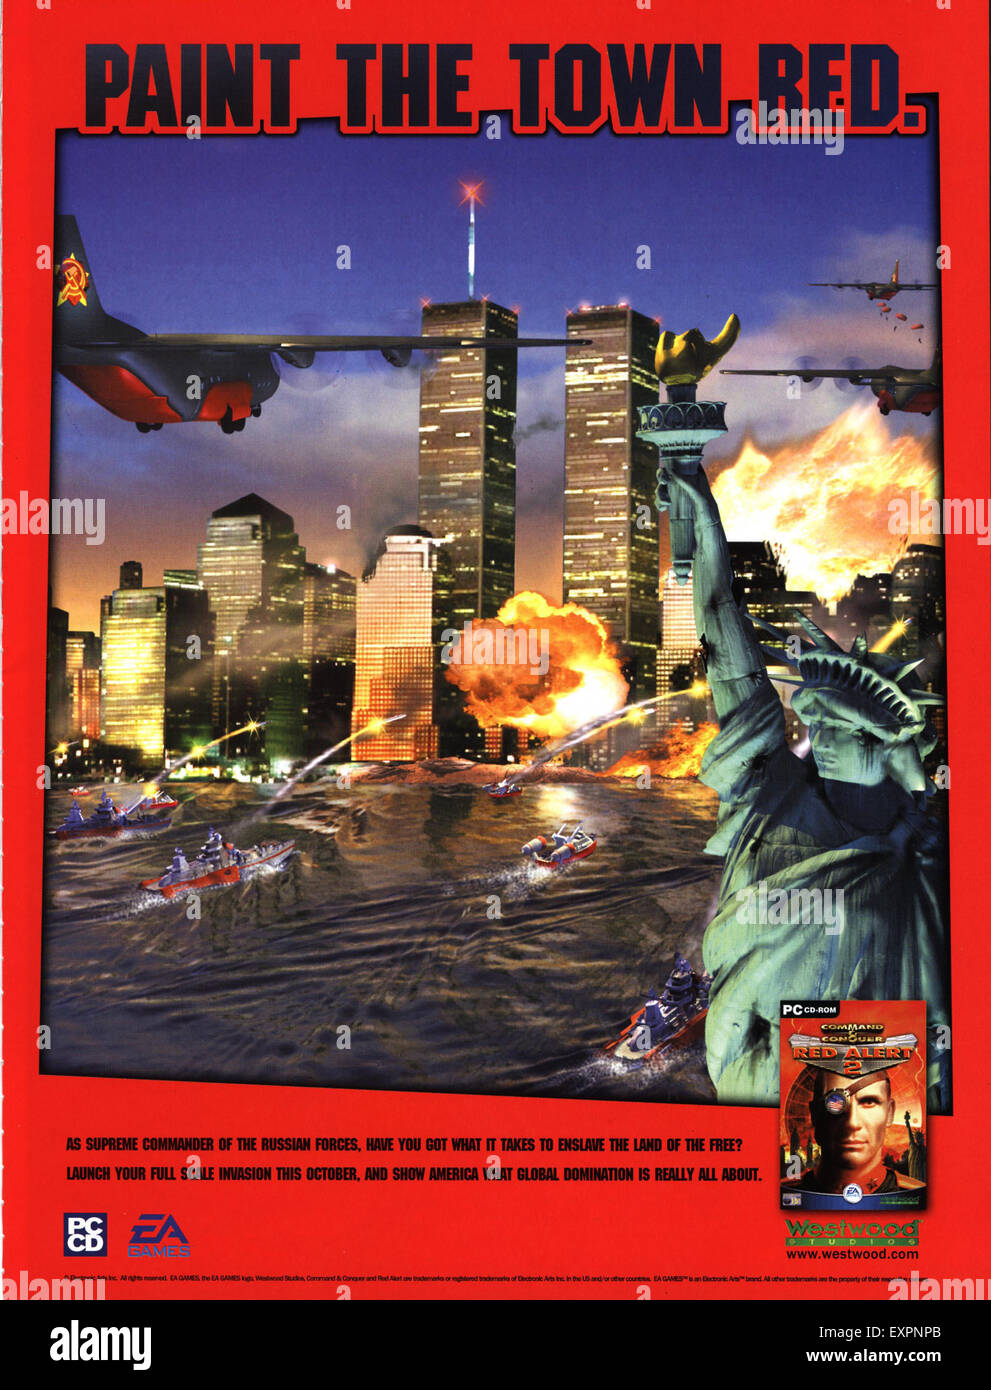 2000s UK Twin Towers Red Alert Pre 9/11 Magazine Advert - Stock Image